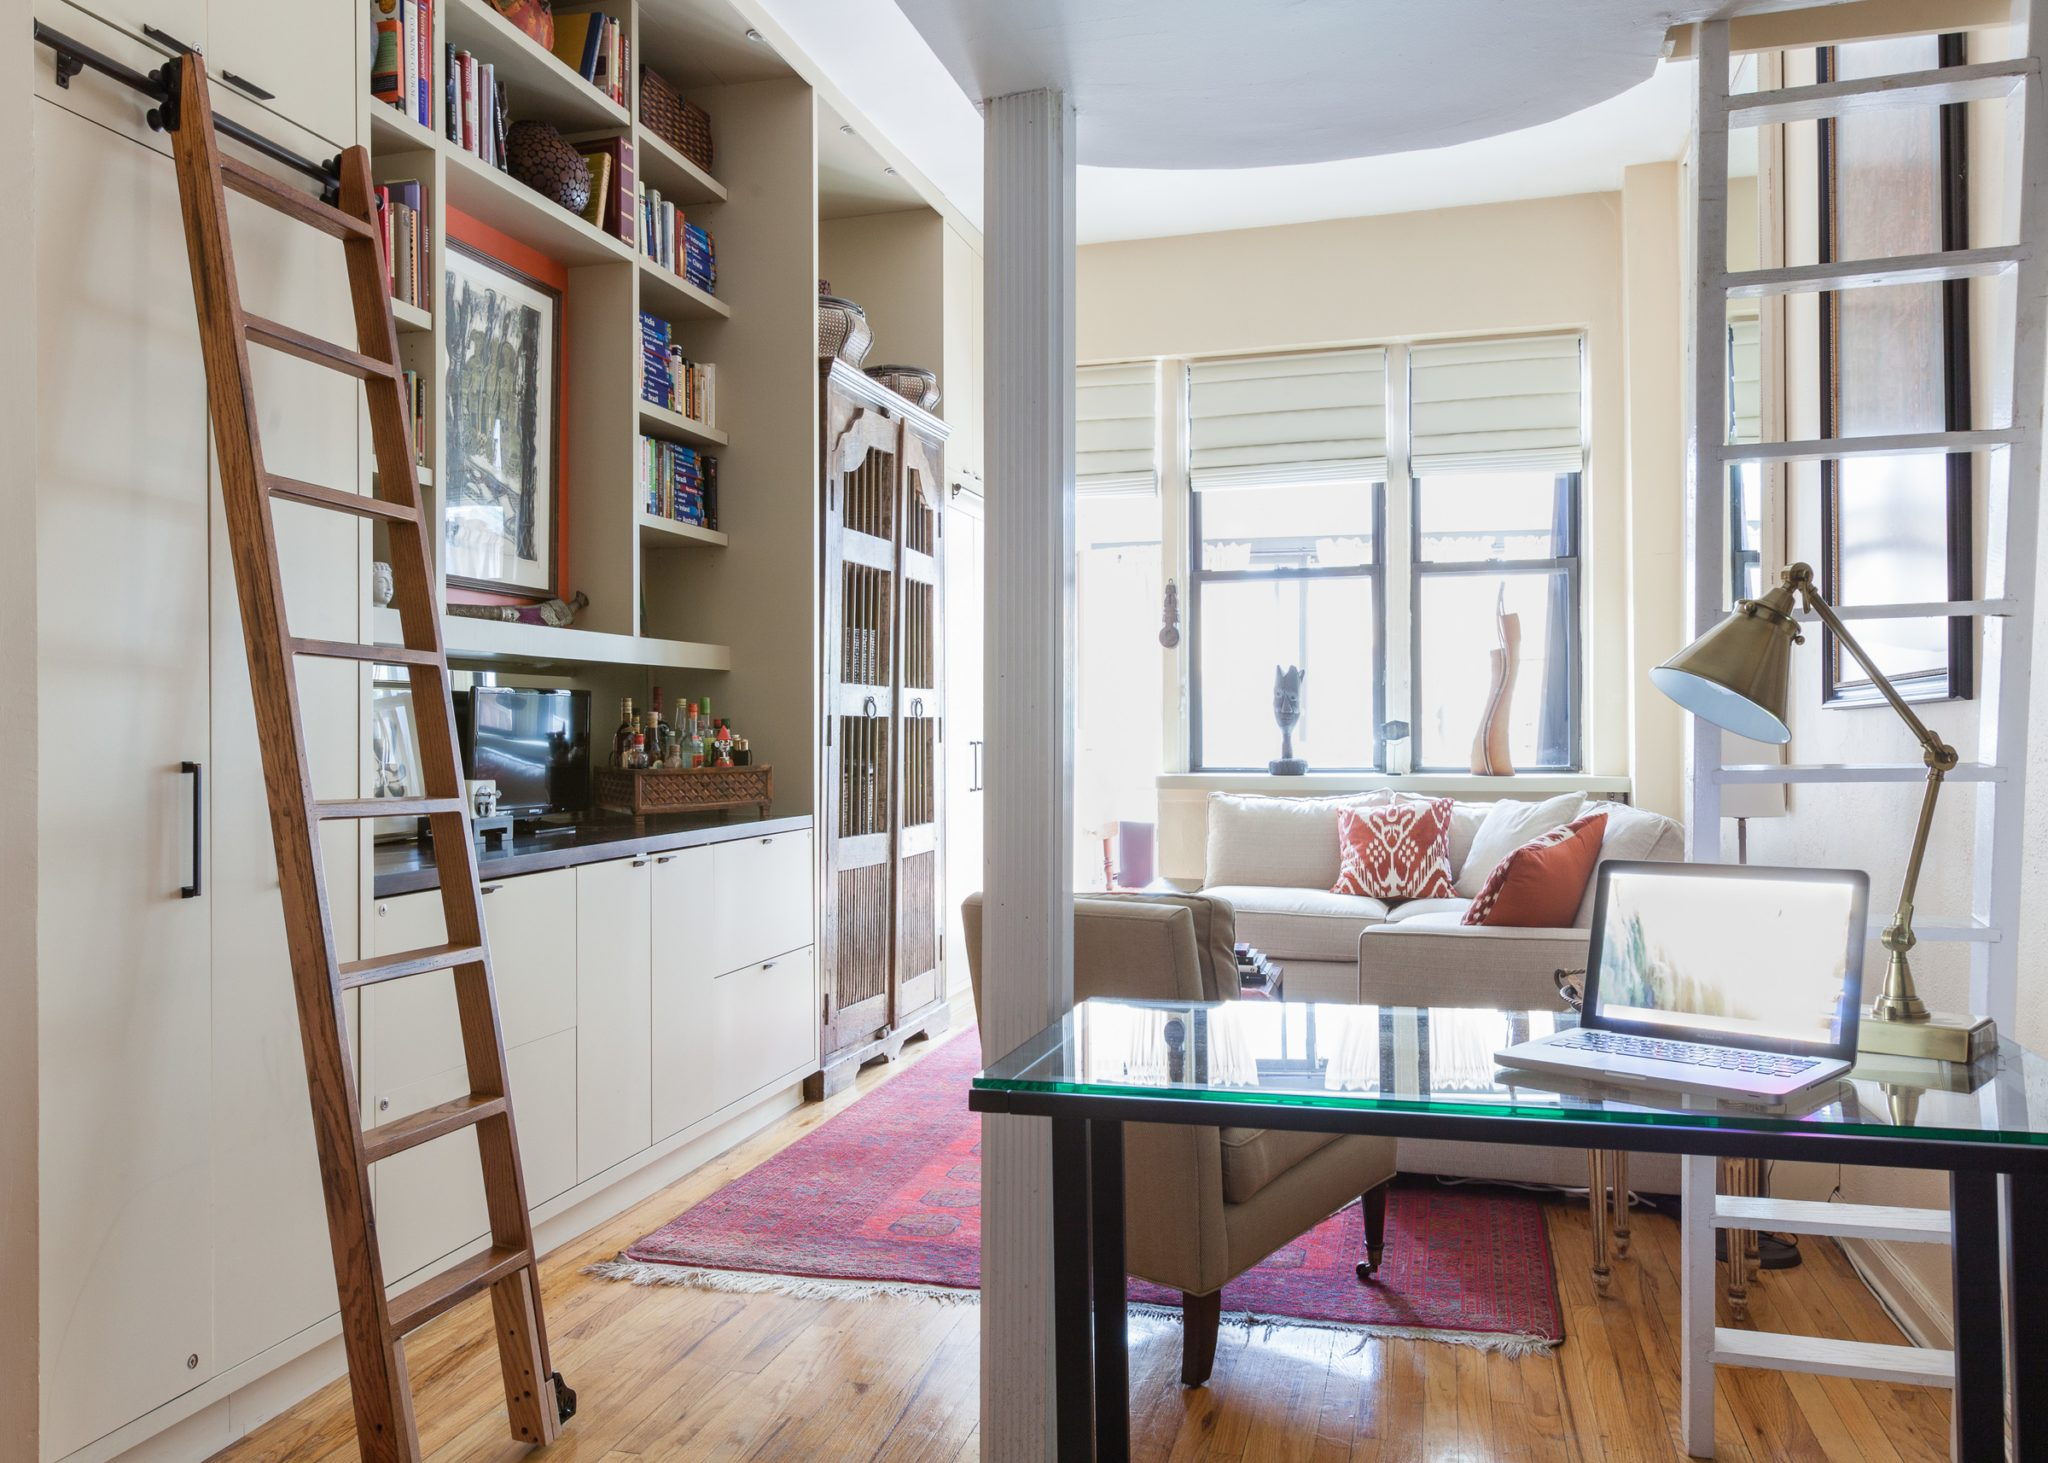 Bookcases and storage to un-clutter small spaces. by Prop Positions Inc.